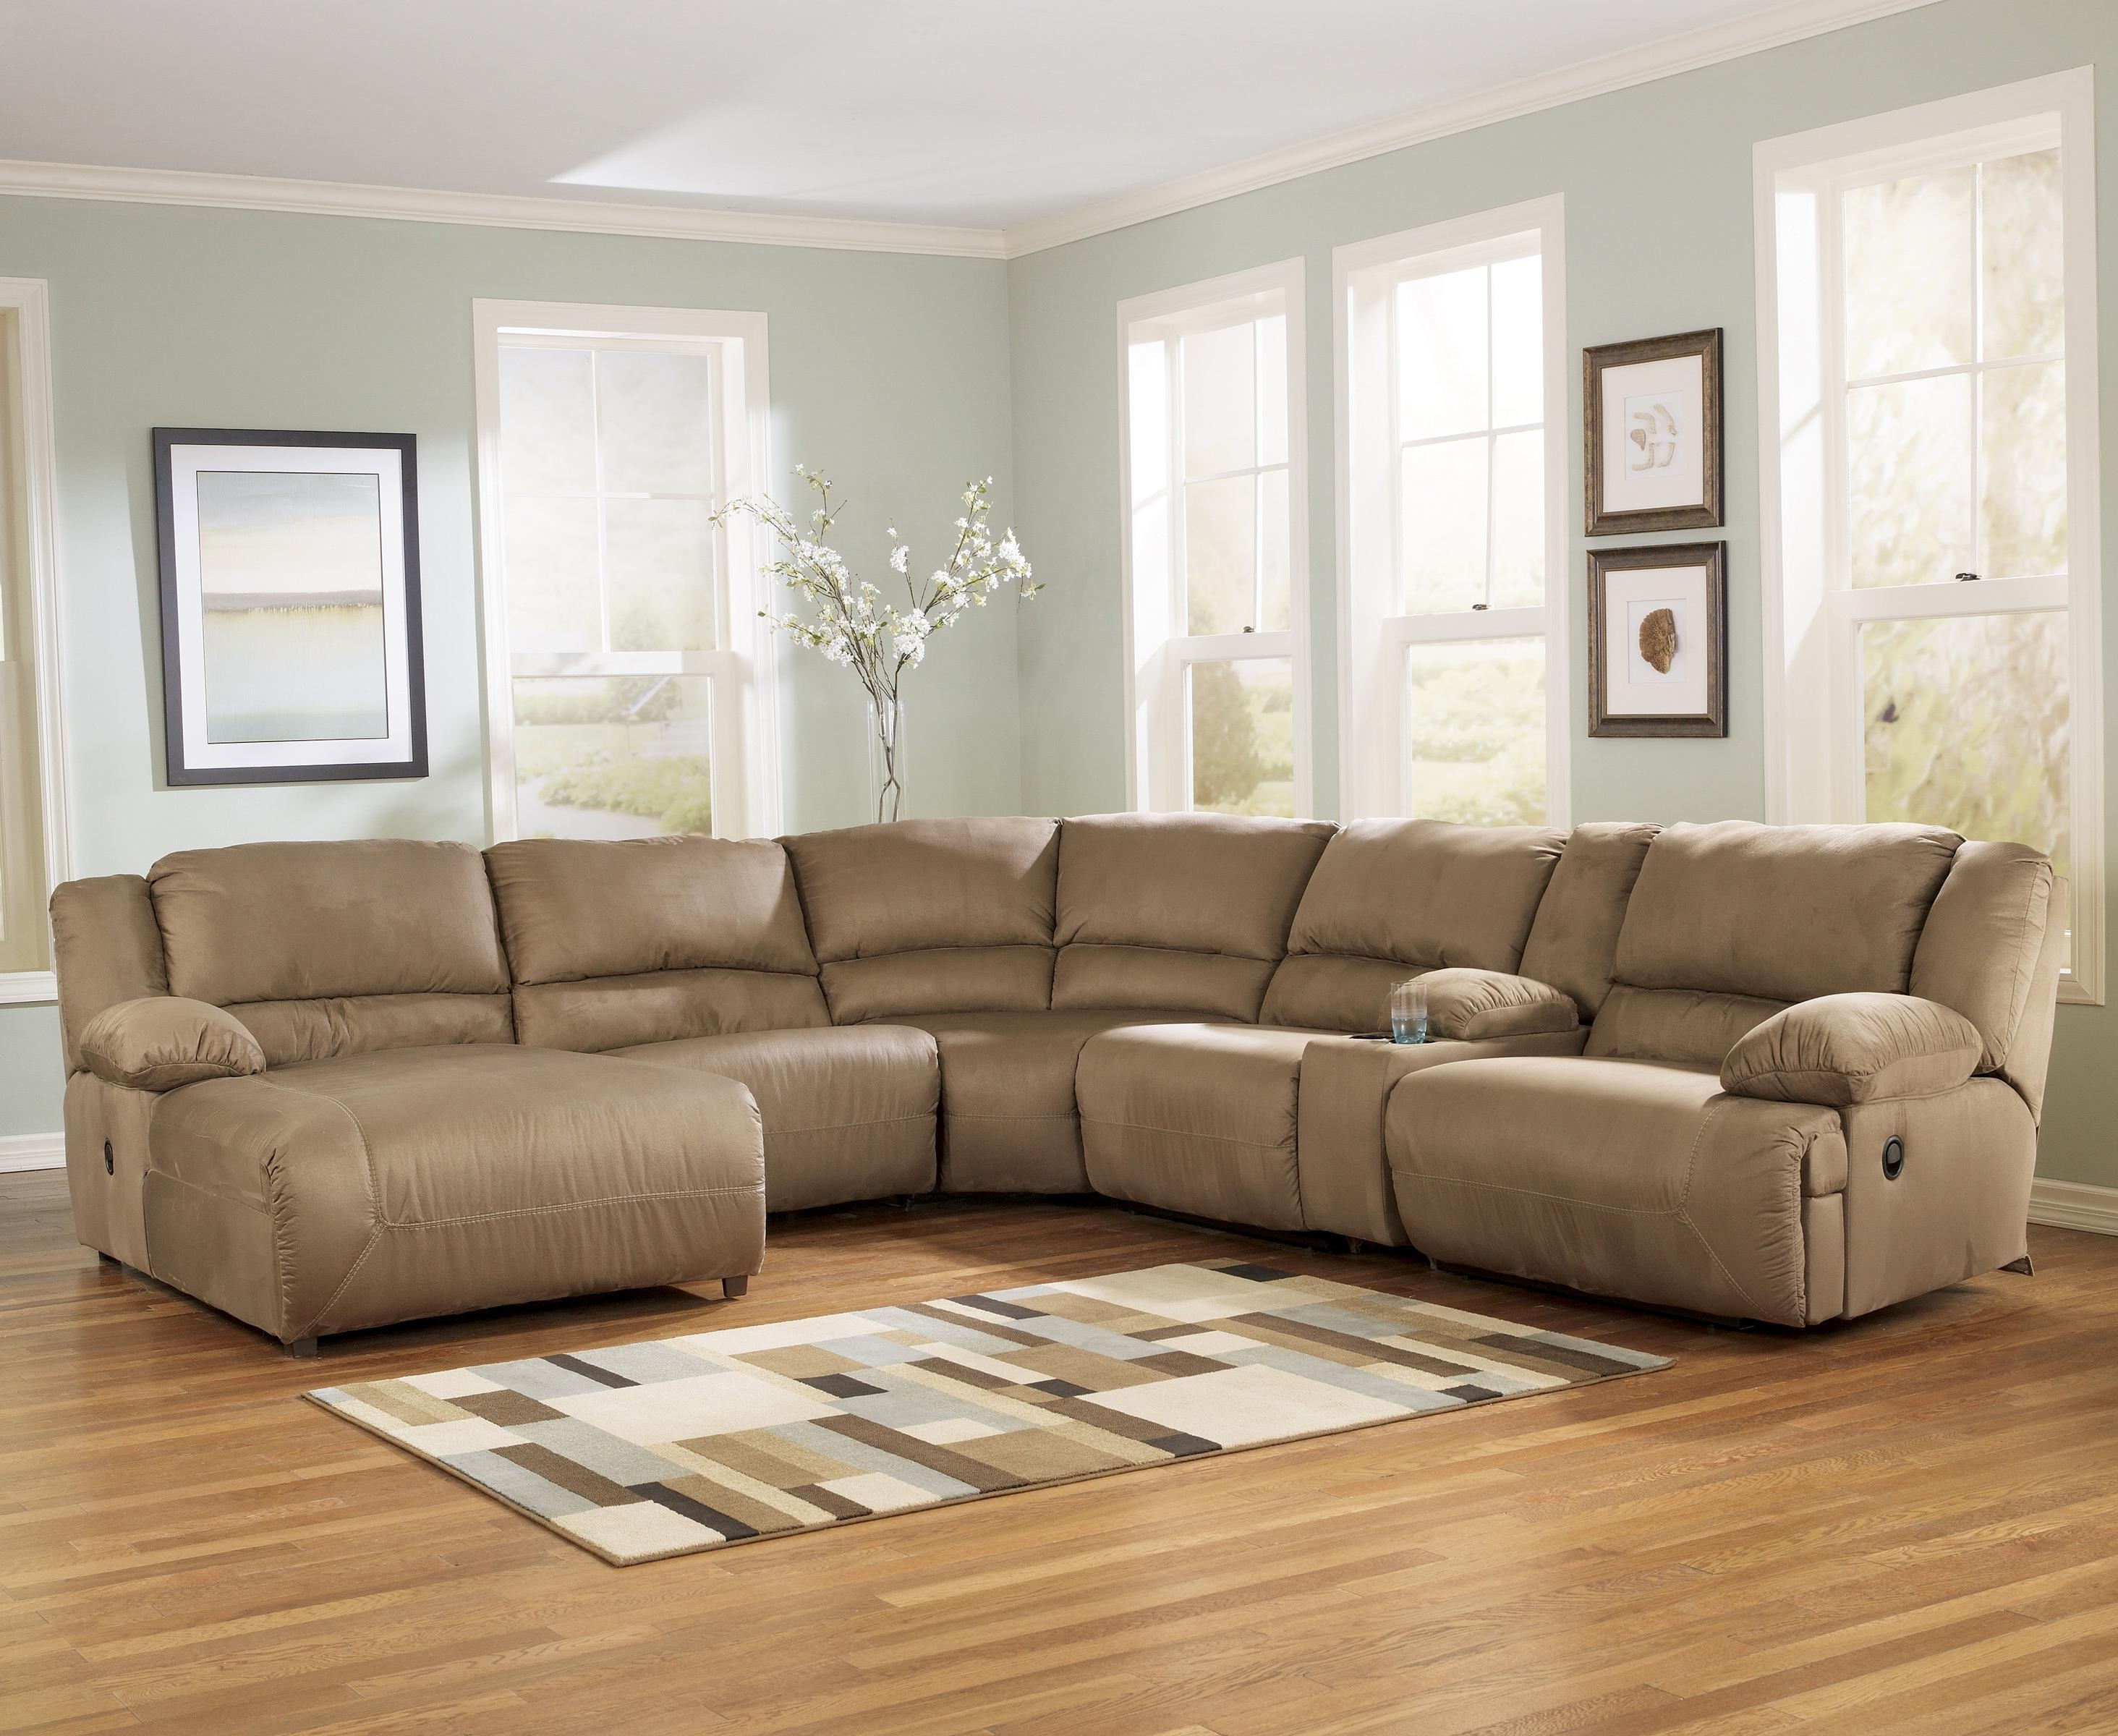 Signature Designashley Hogan – Mocha 6 Piece Motion Sectional In El Paso Tx Sectional Sofas (Image 10 of 10)